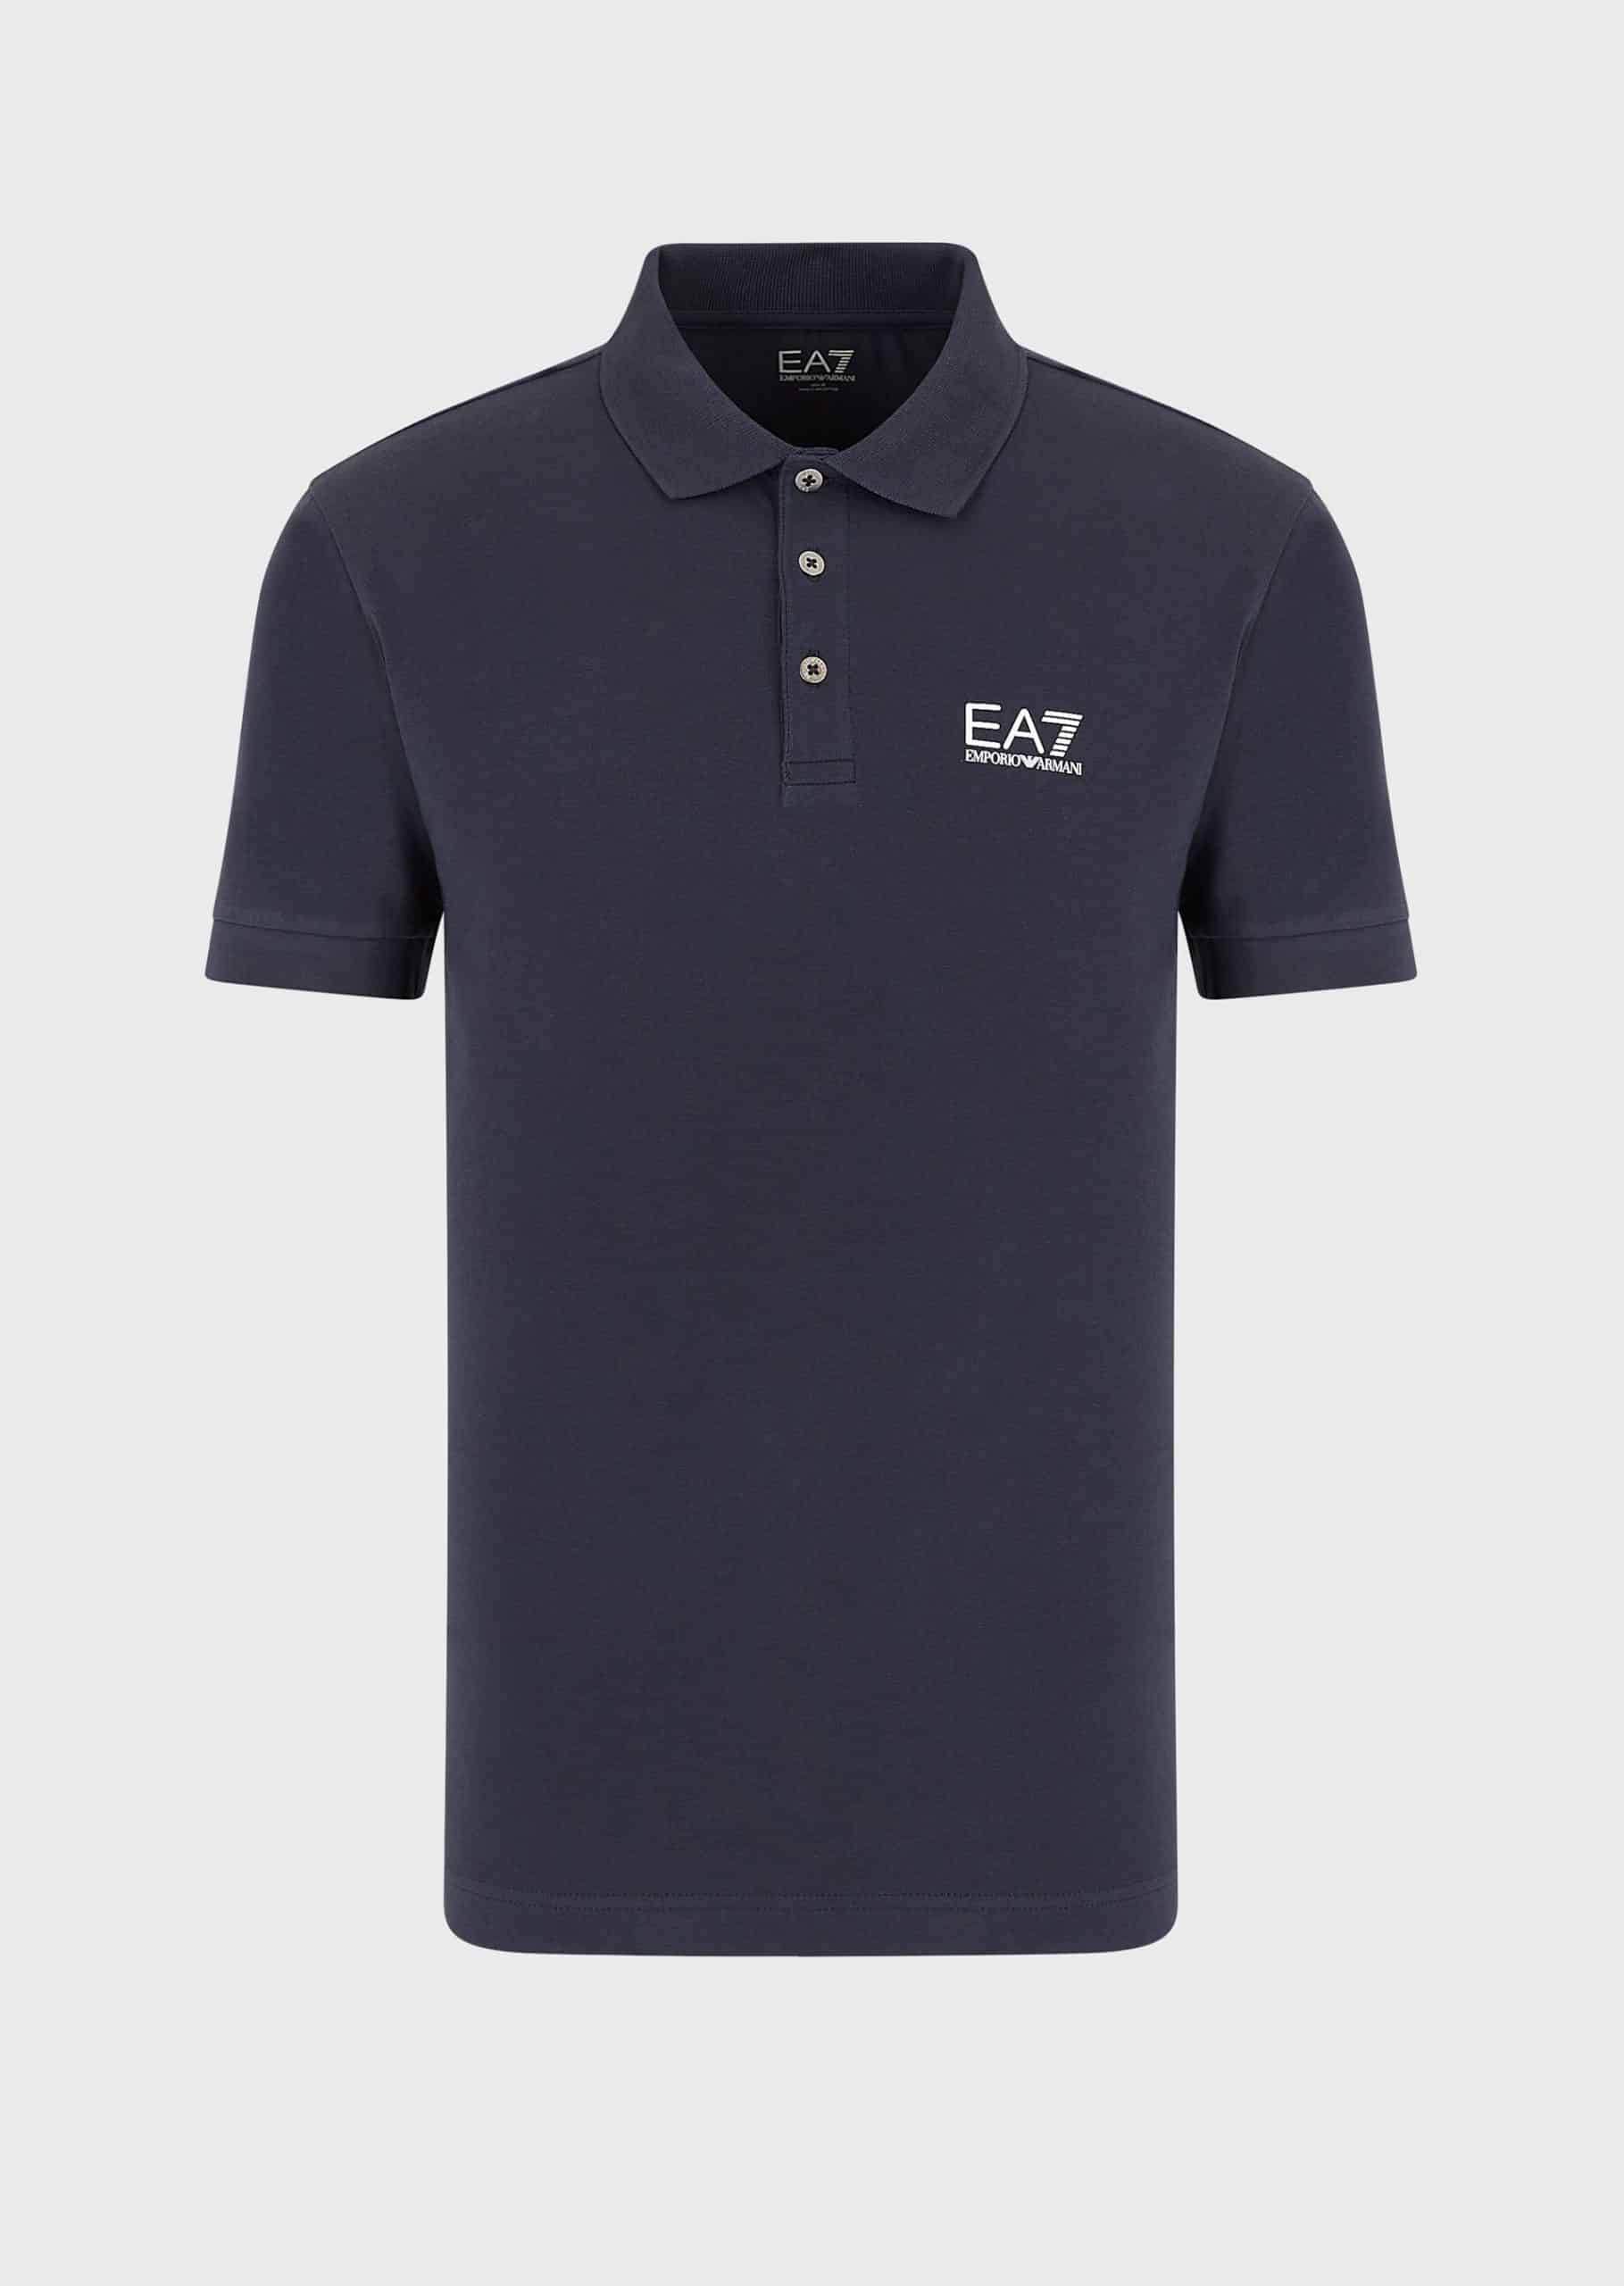 Armani EA7 Polo With Logo